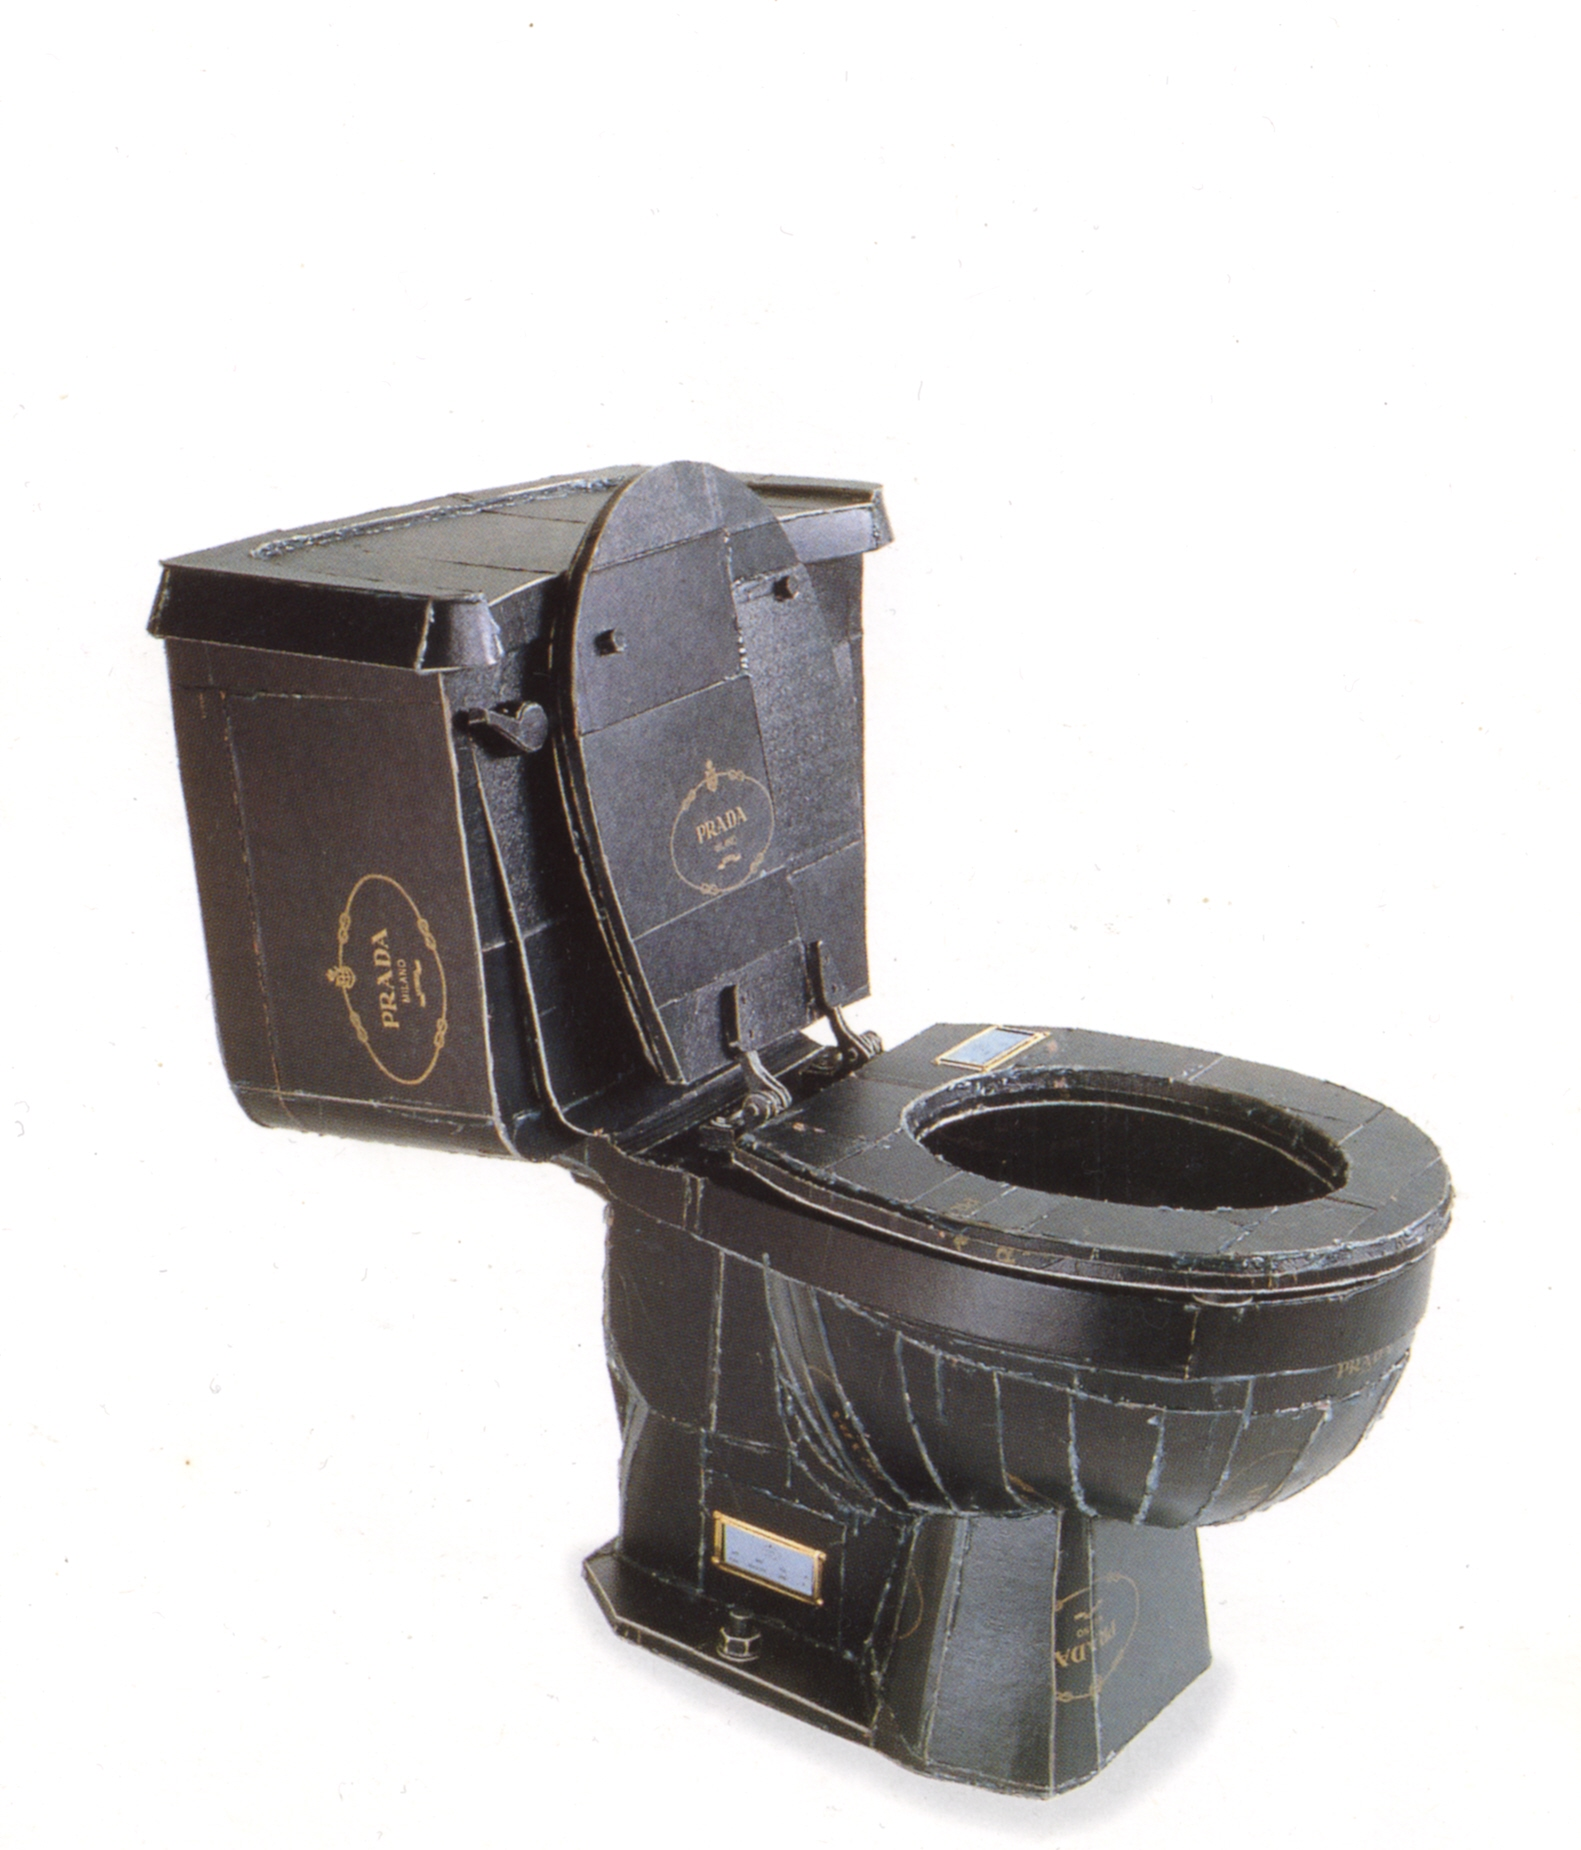 prada toilet 1996 artwork tom sachs